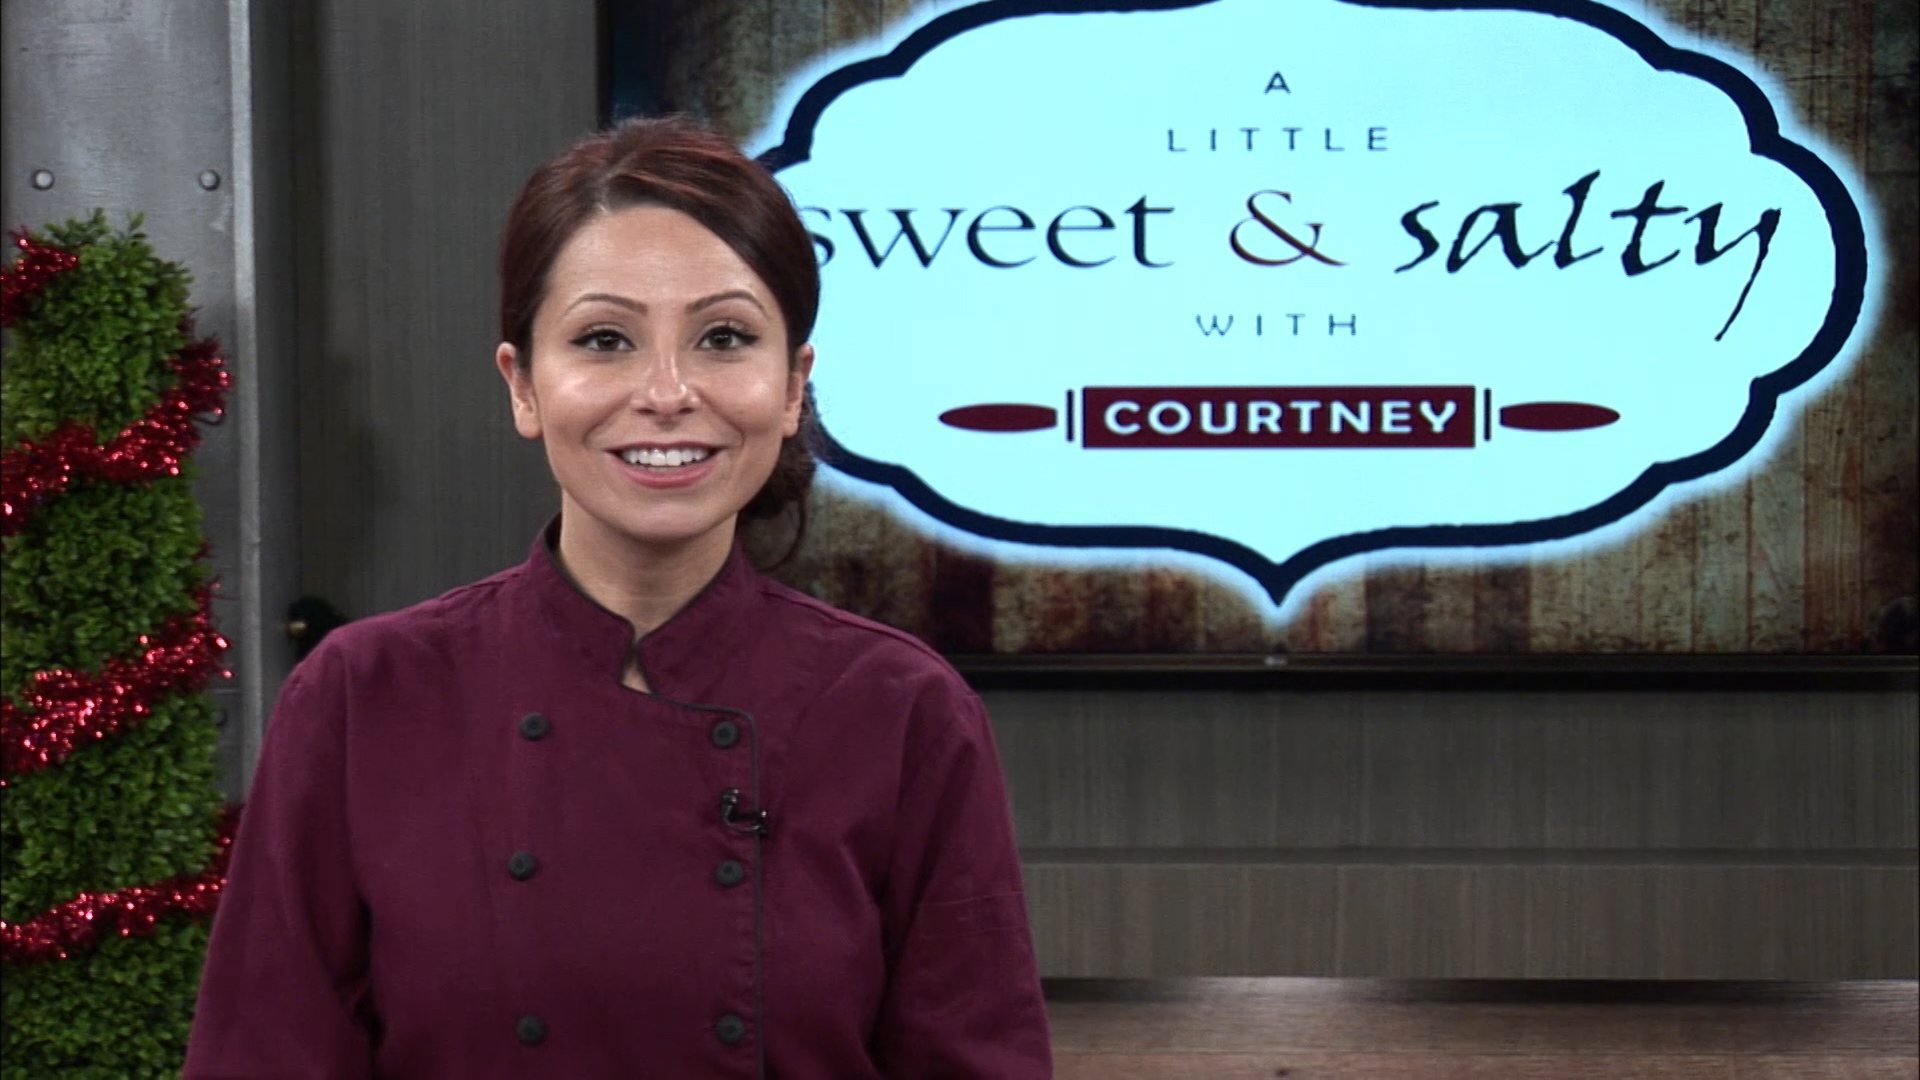 A Little Sweet & Salty with Chef Courtney: Exciting recipes for everyone! From tasty treats to savory dinners.